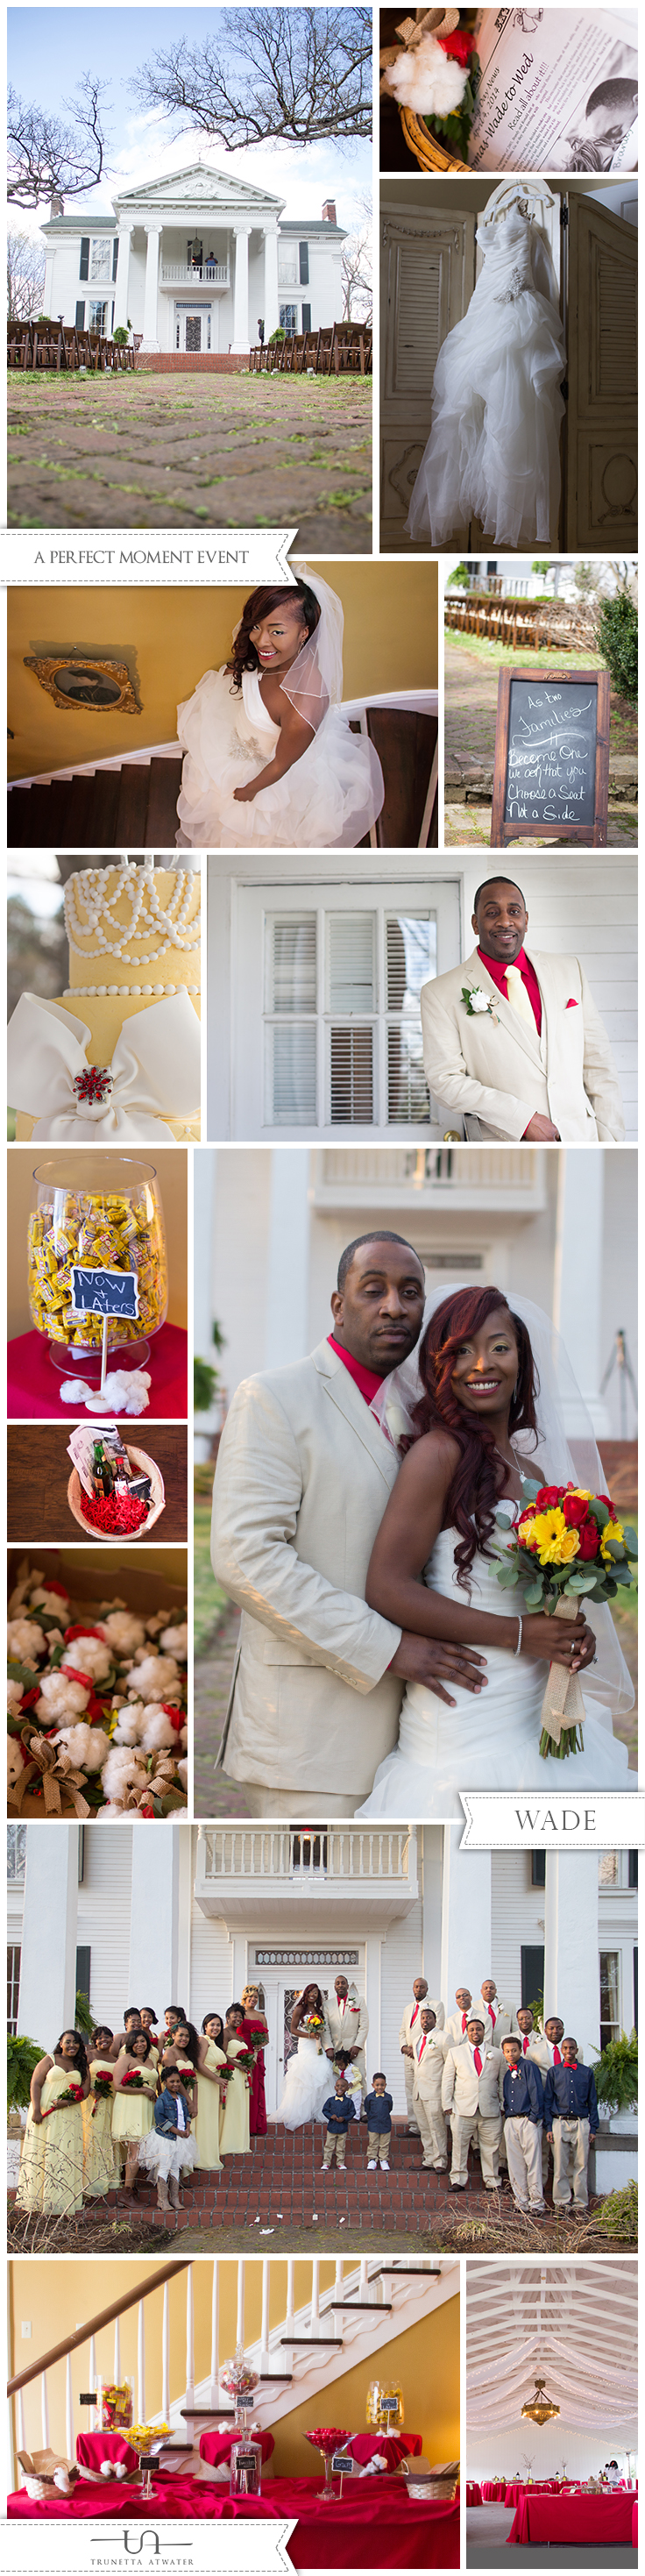 We would love to photograph your wedding too, contact us here for details.